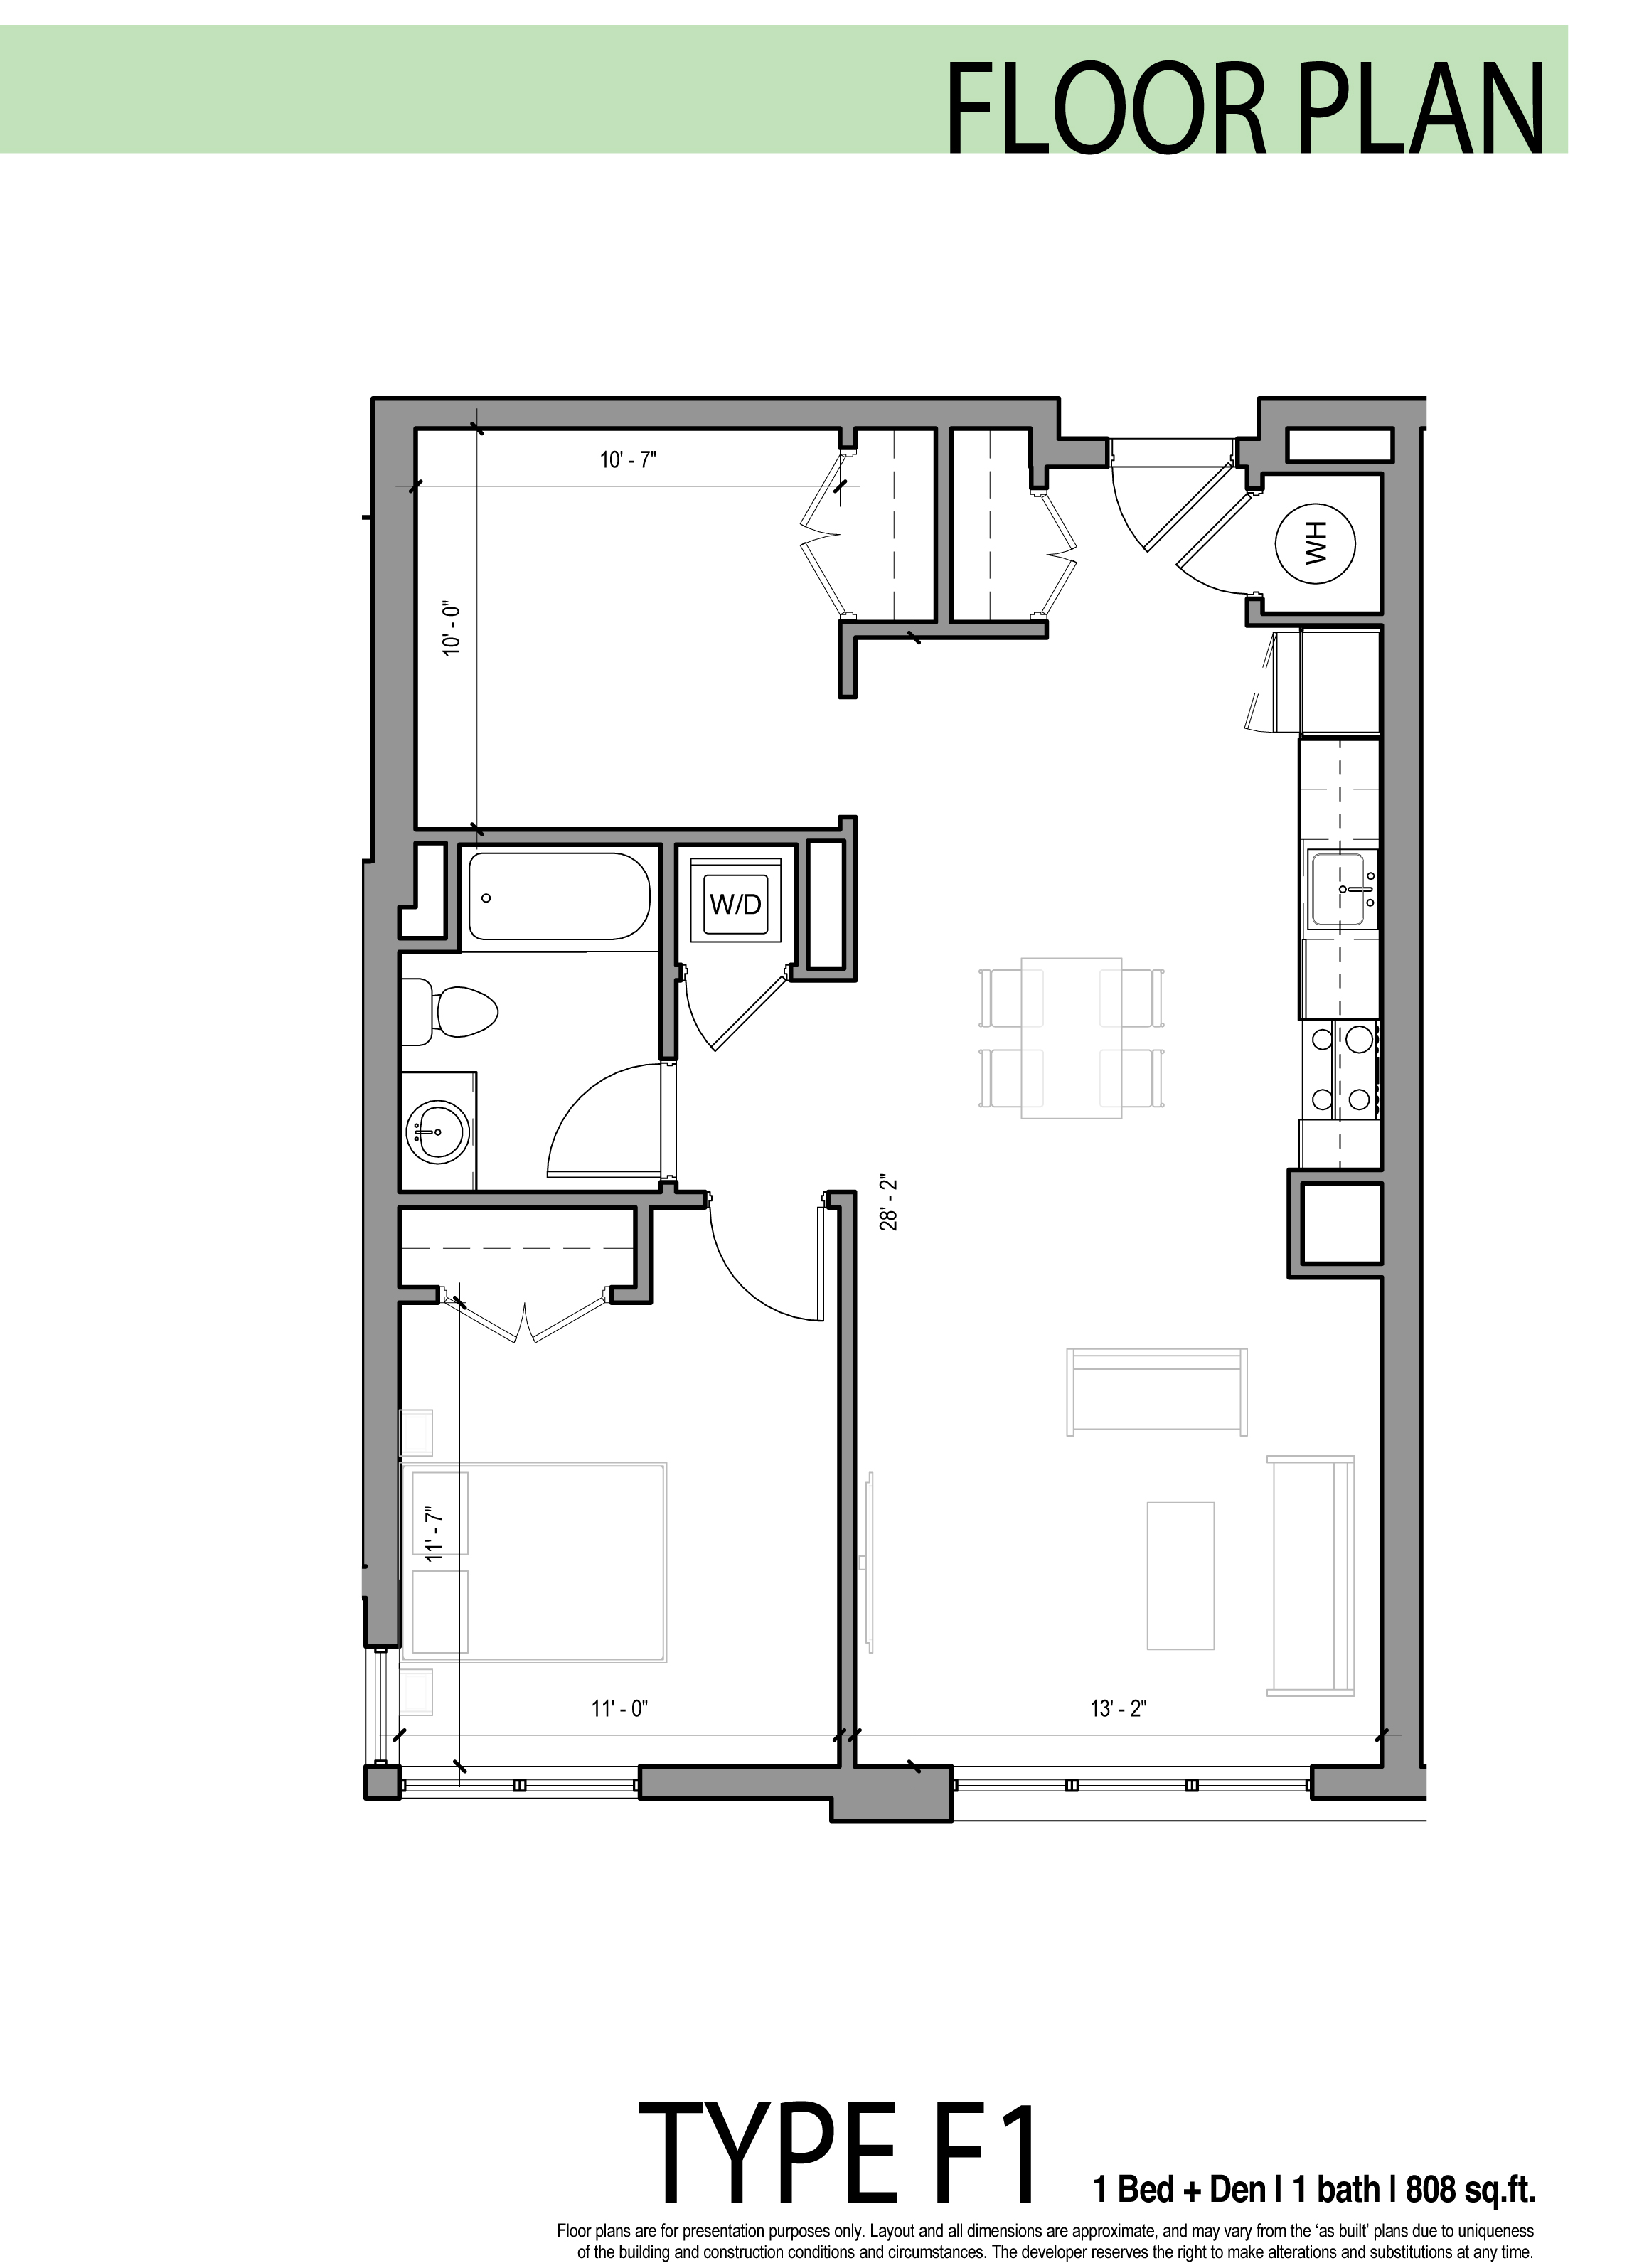 Edge allston floor plans layouts at the edge luxury building for 1 bedroom apartment plans